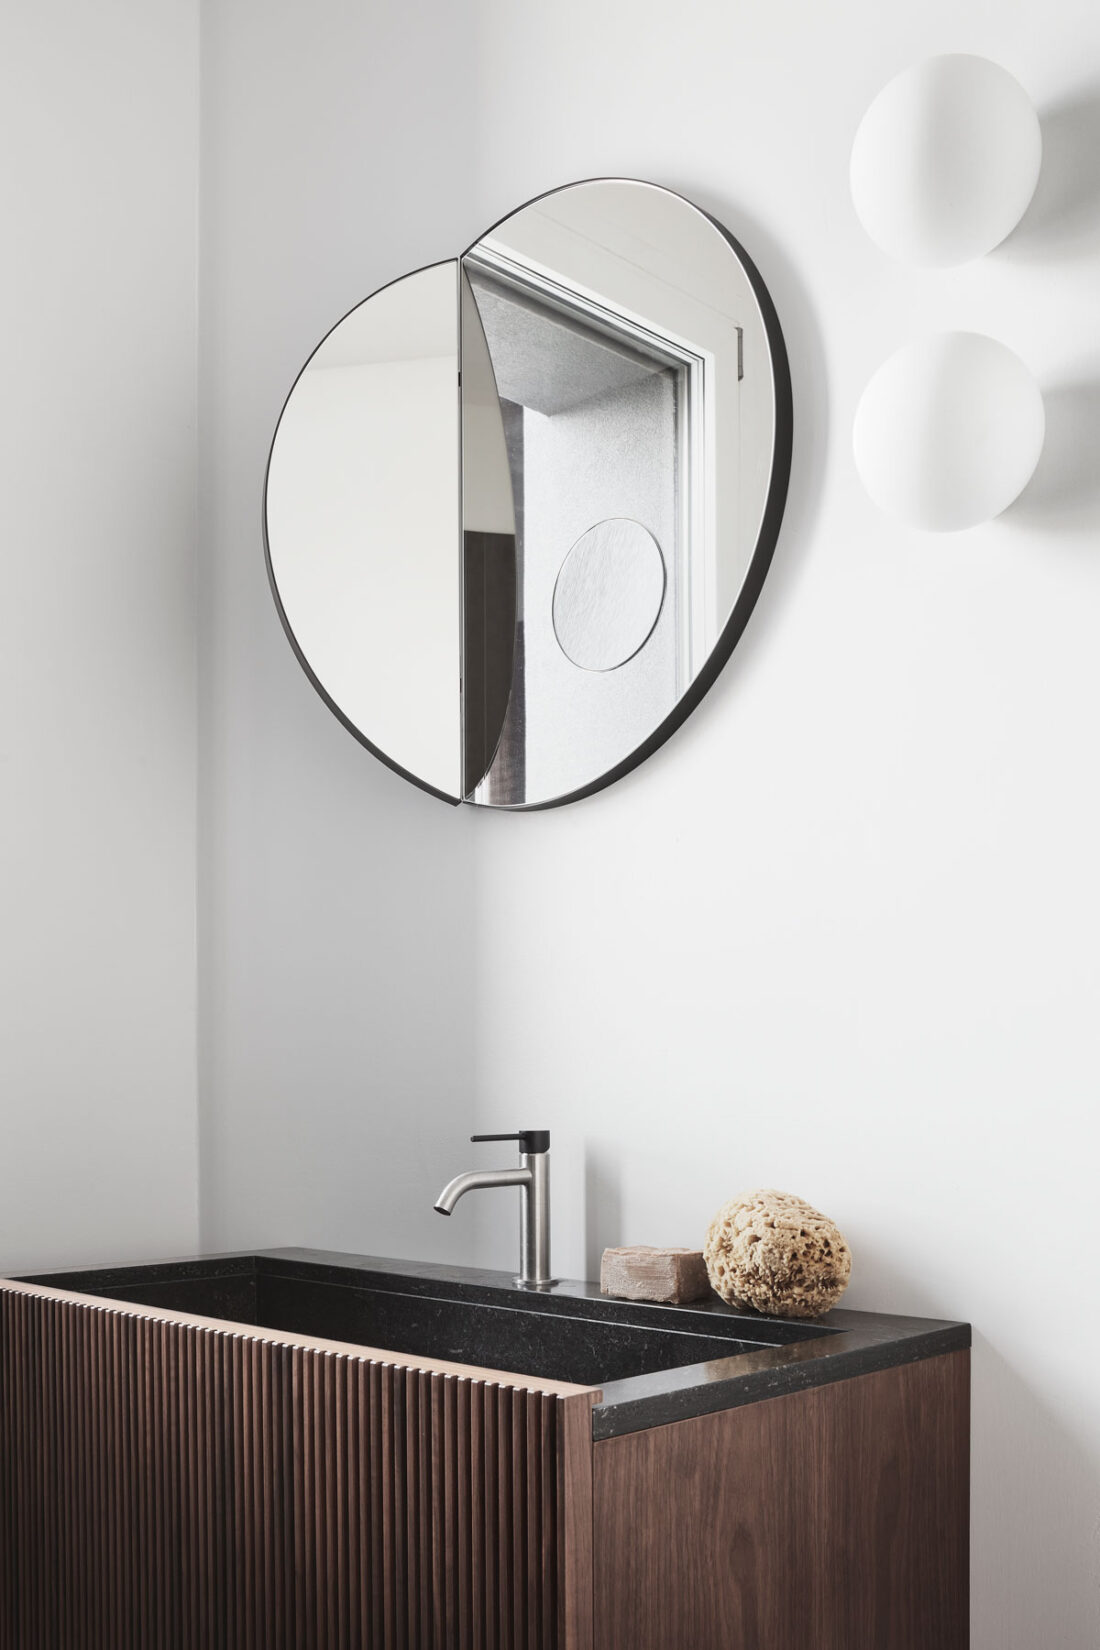 japanese-style washbasins made by natural stone and walnut wood with a circle mirror and accessories